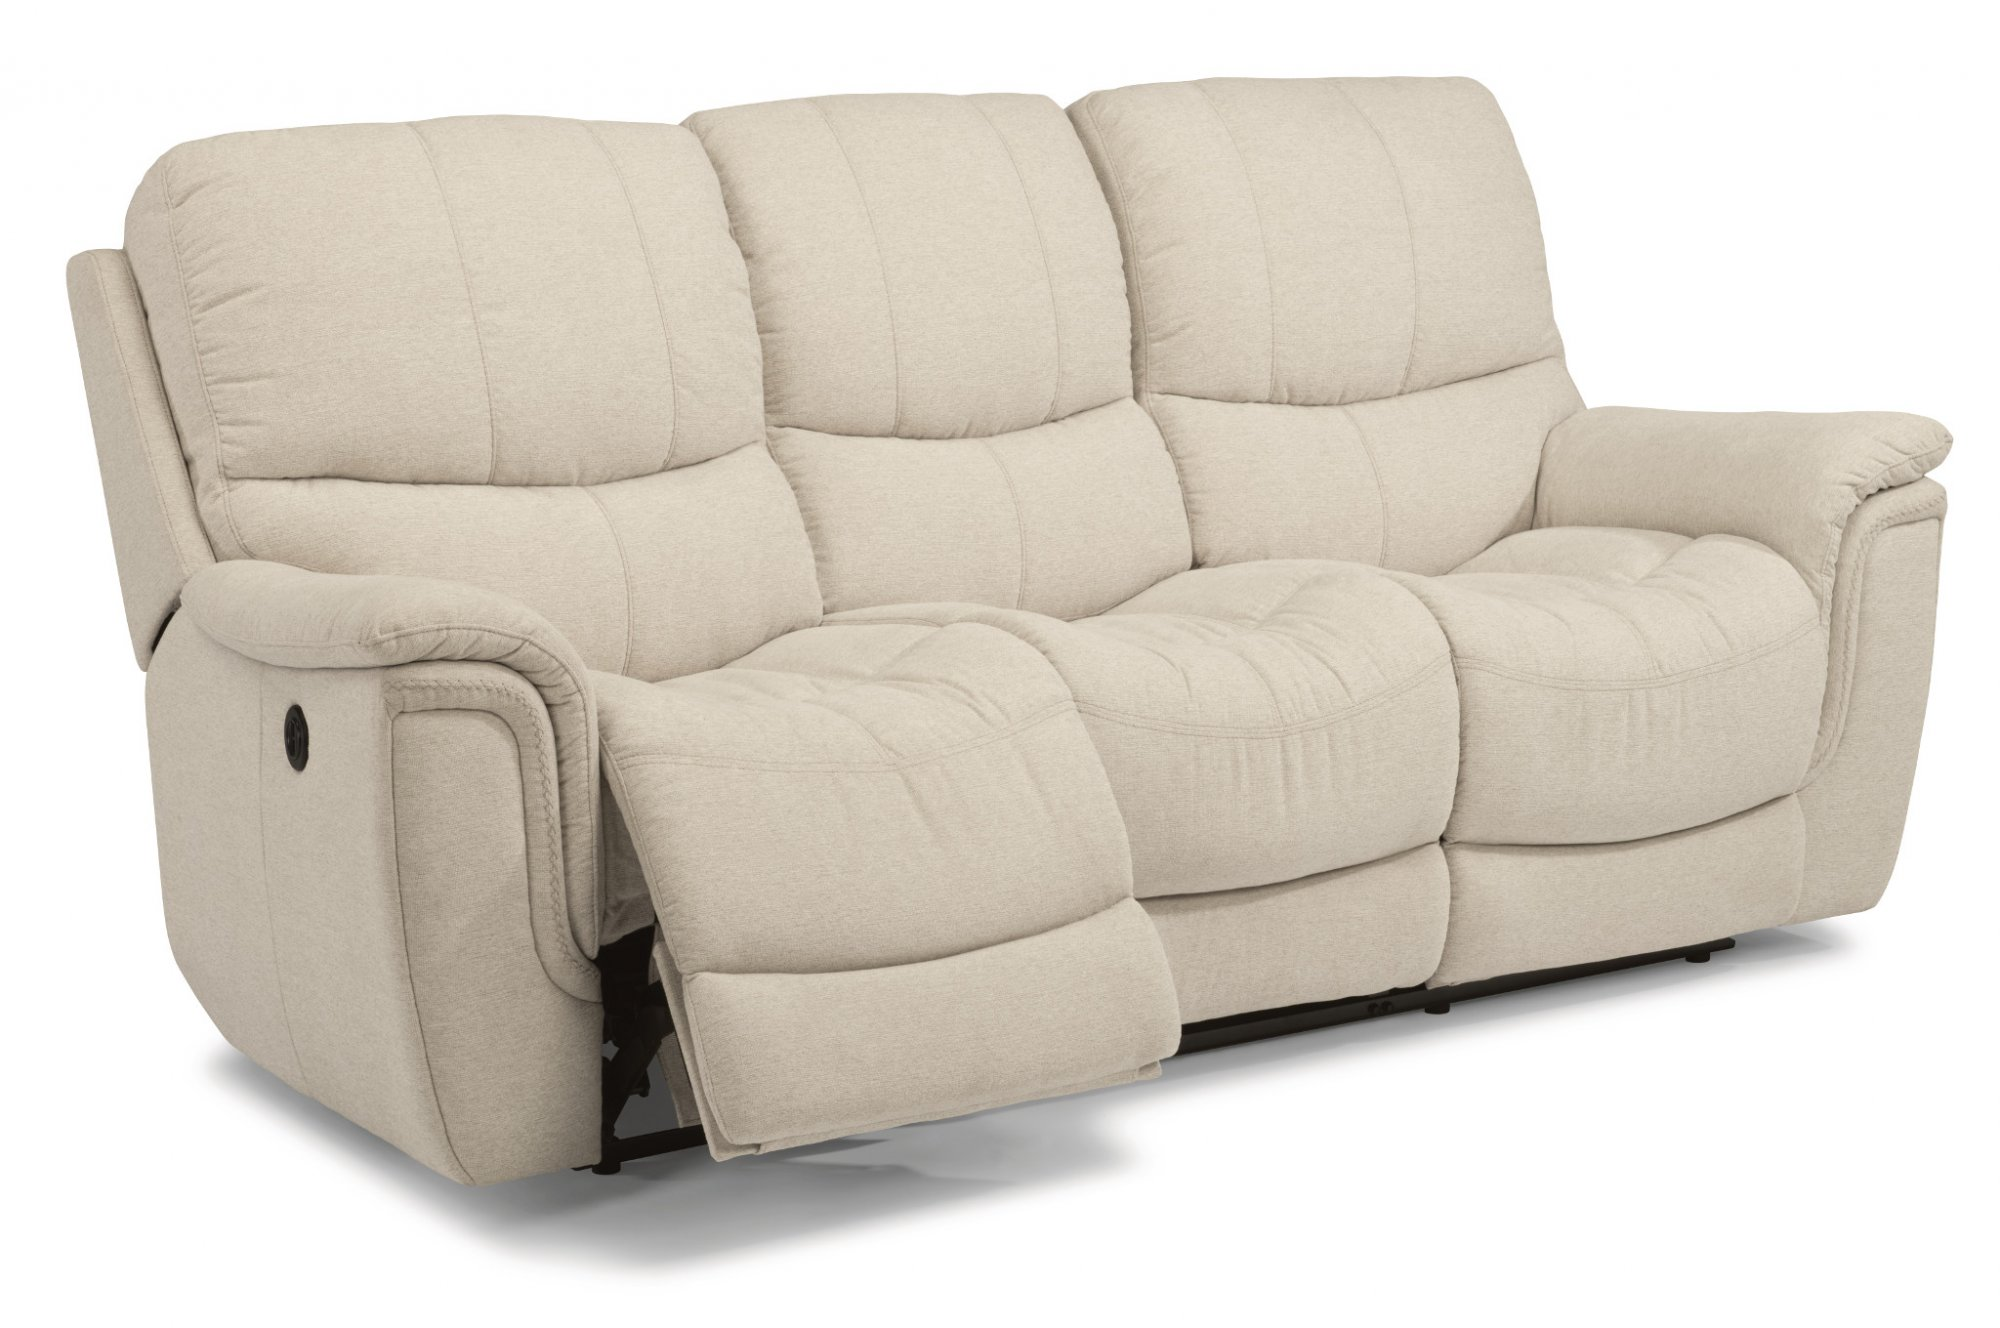 Fabric Power Reclining Sofa  sc 1 st  Flexsteel & Reclining Chairs u0026 Sofas | Reclining Furniture from Flexsteel islam-shia.org